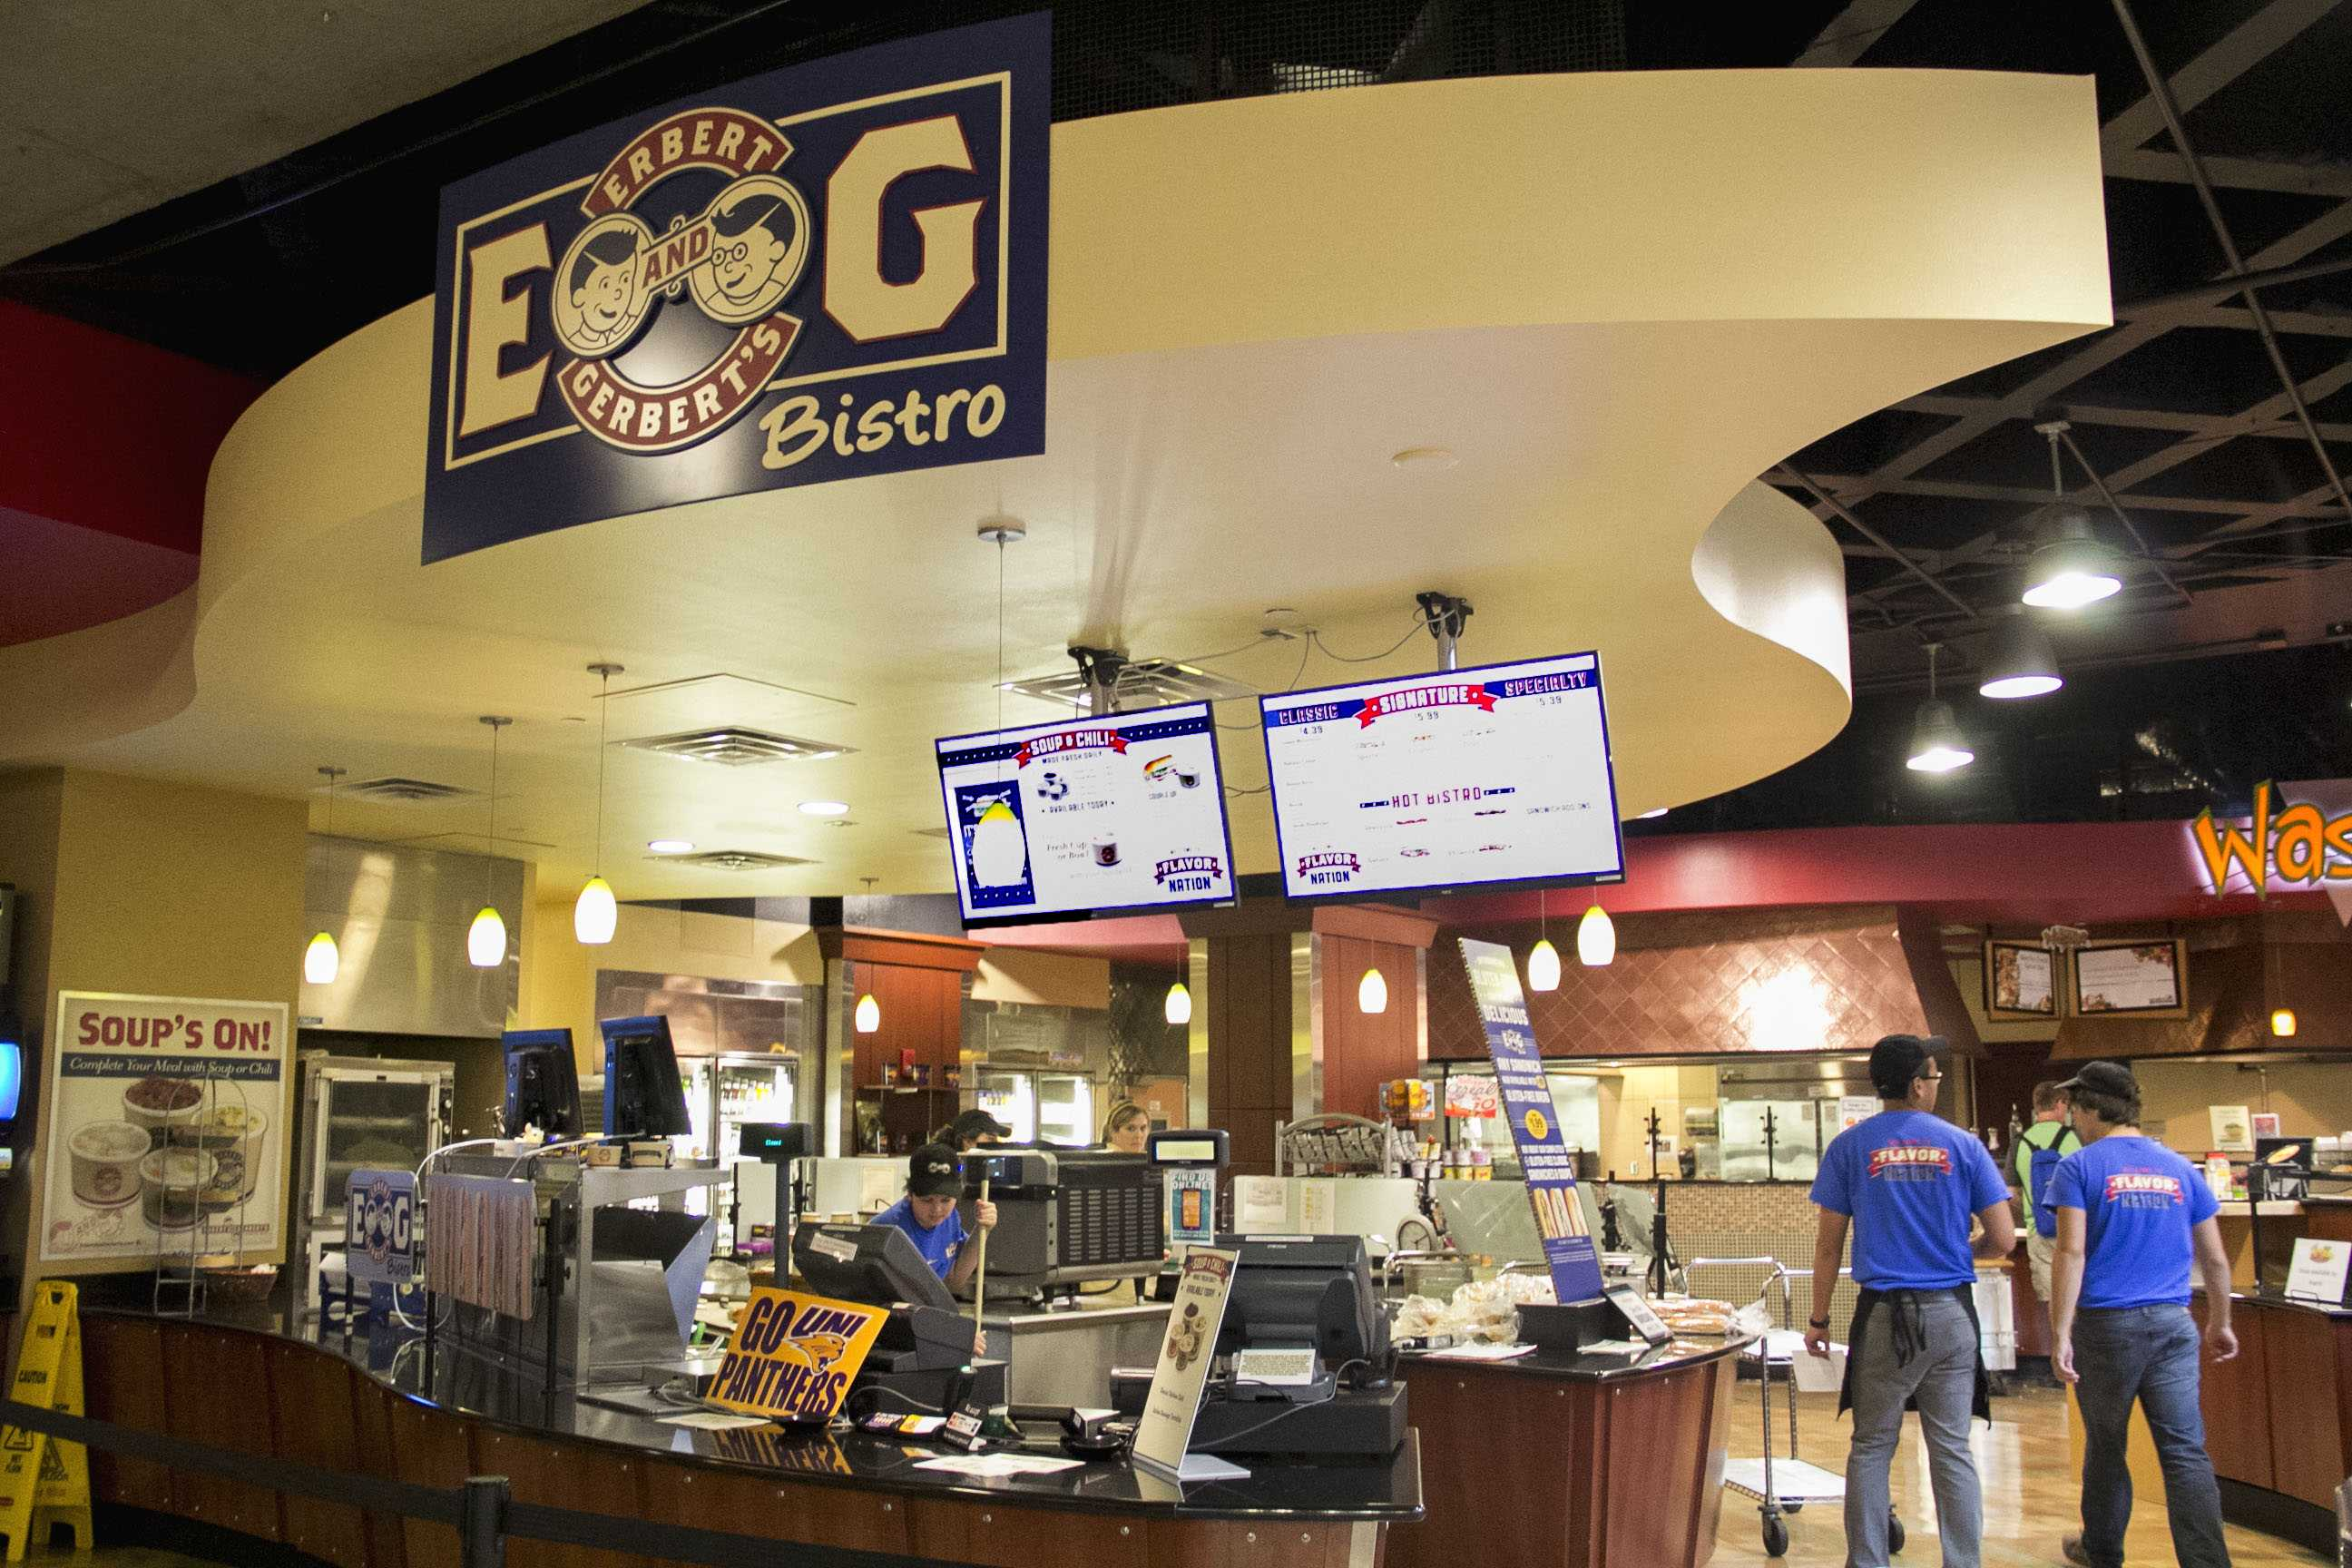 The Erbert and Gerbert's Bistro, located in the Maucker Union, will soon be offering a UNI-specific sandwich, dubbed the